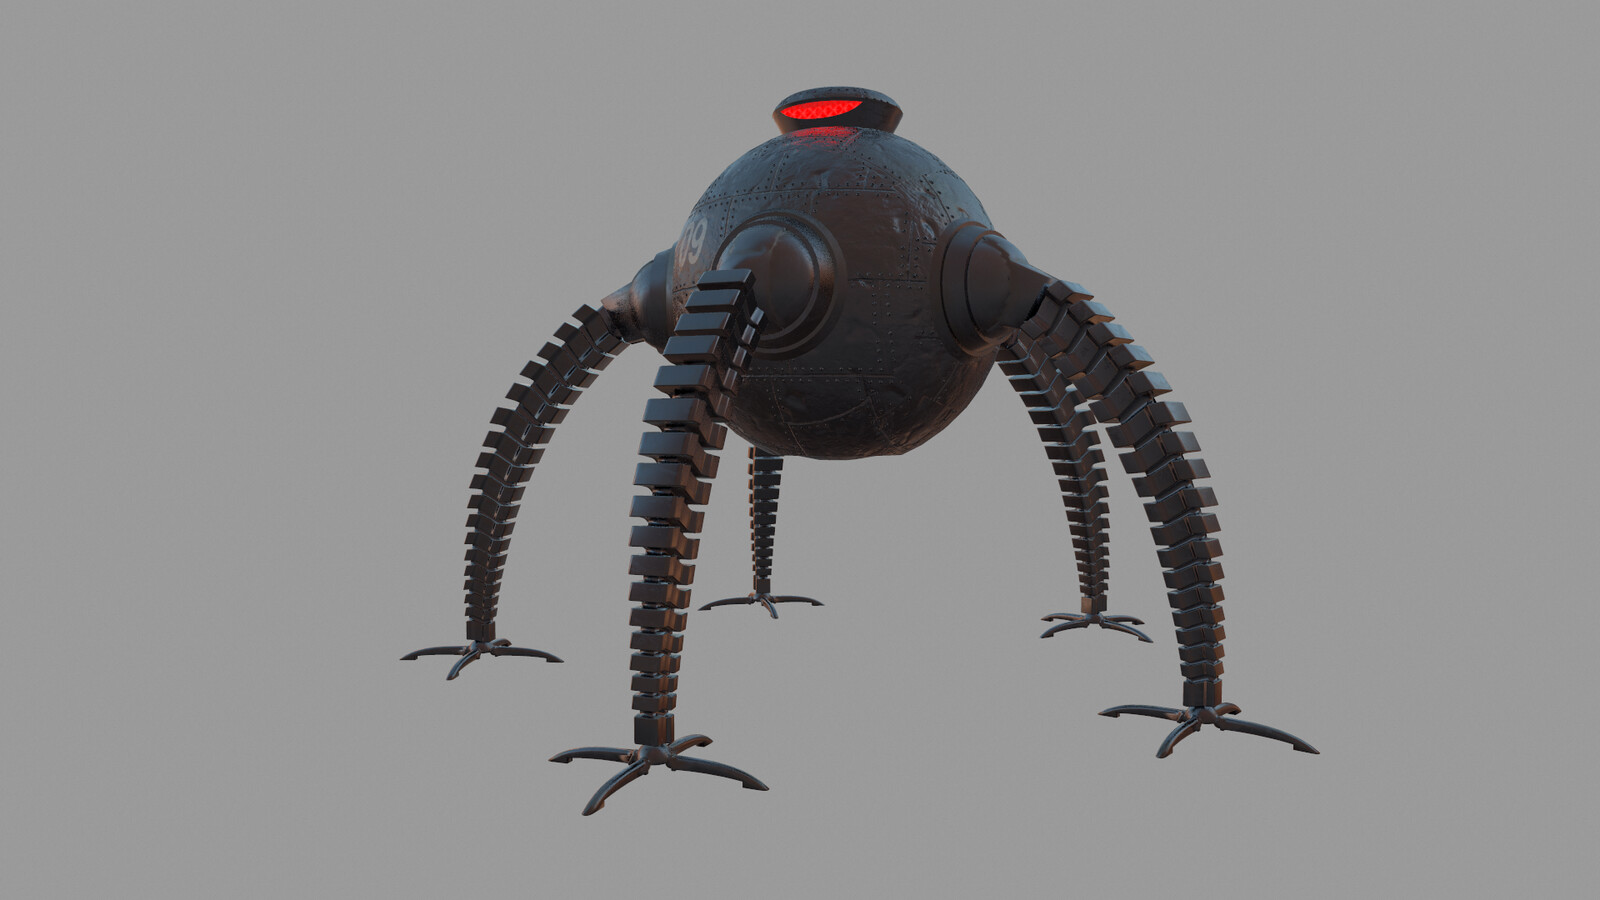 Omnidroid from The Incredibles